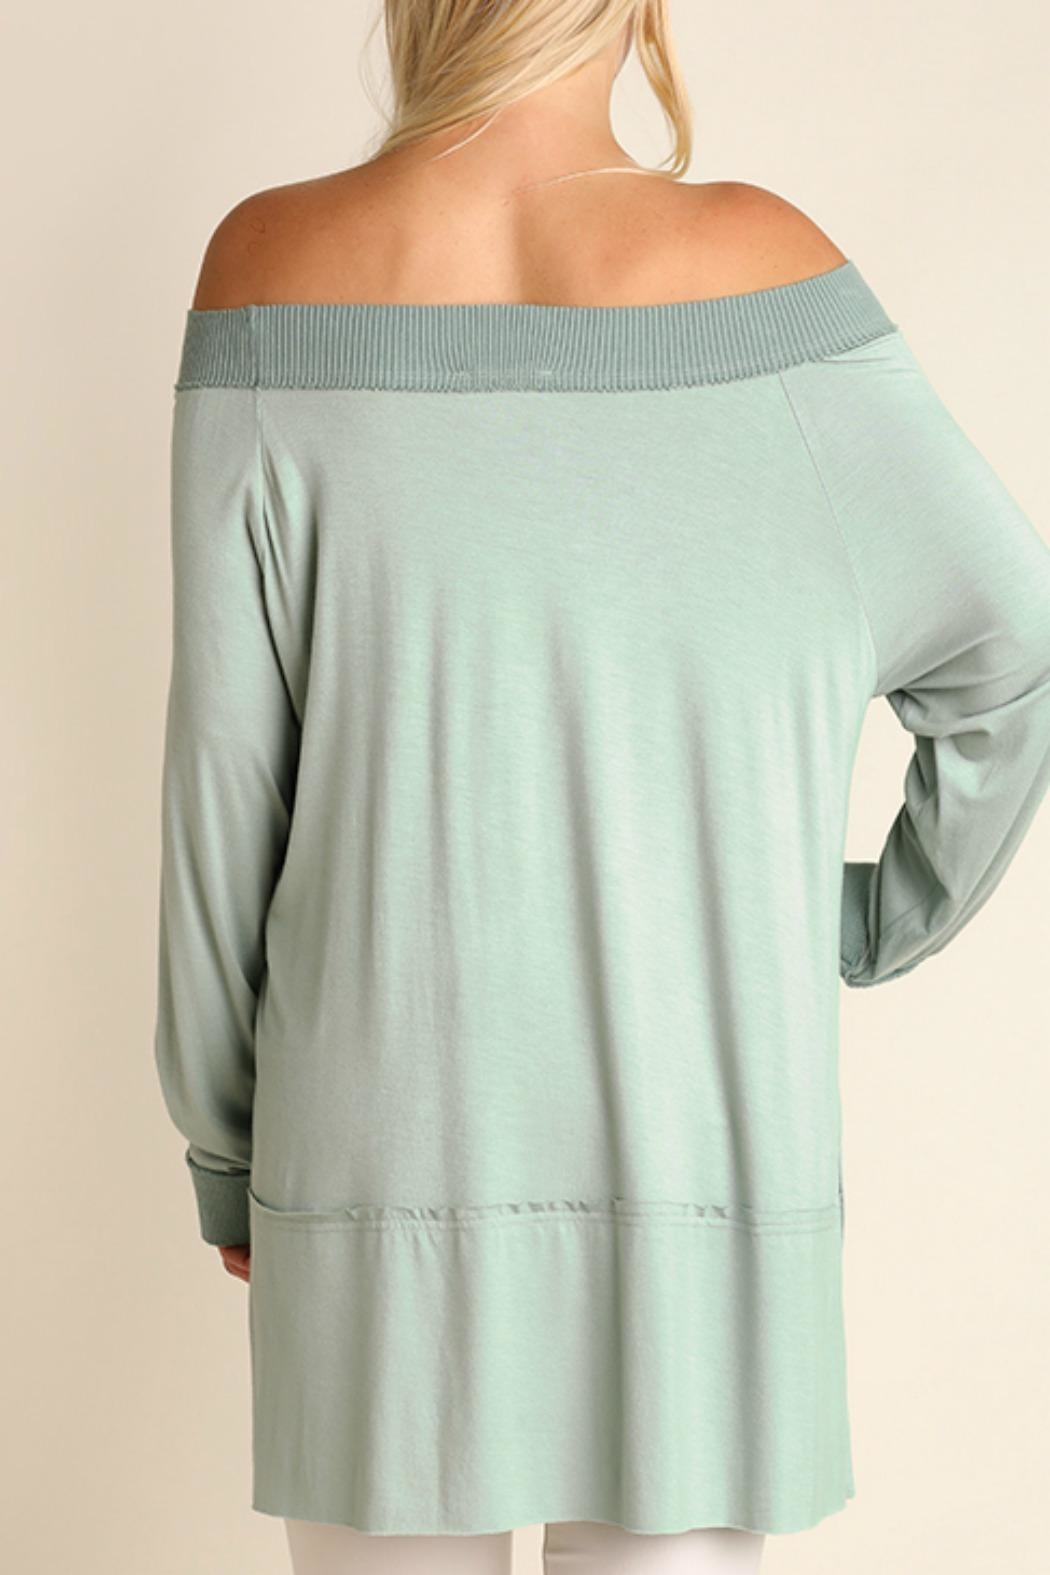 Umgee USA Off the Shoulder Classy Top - Back Cropped Image